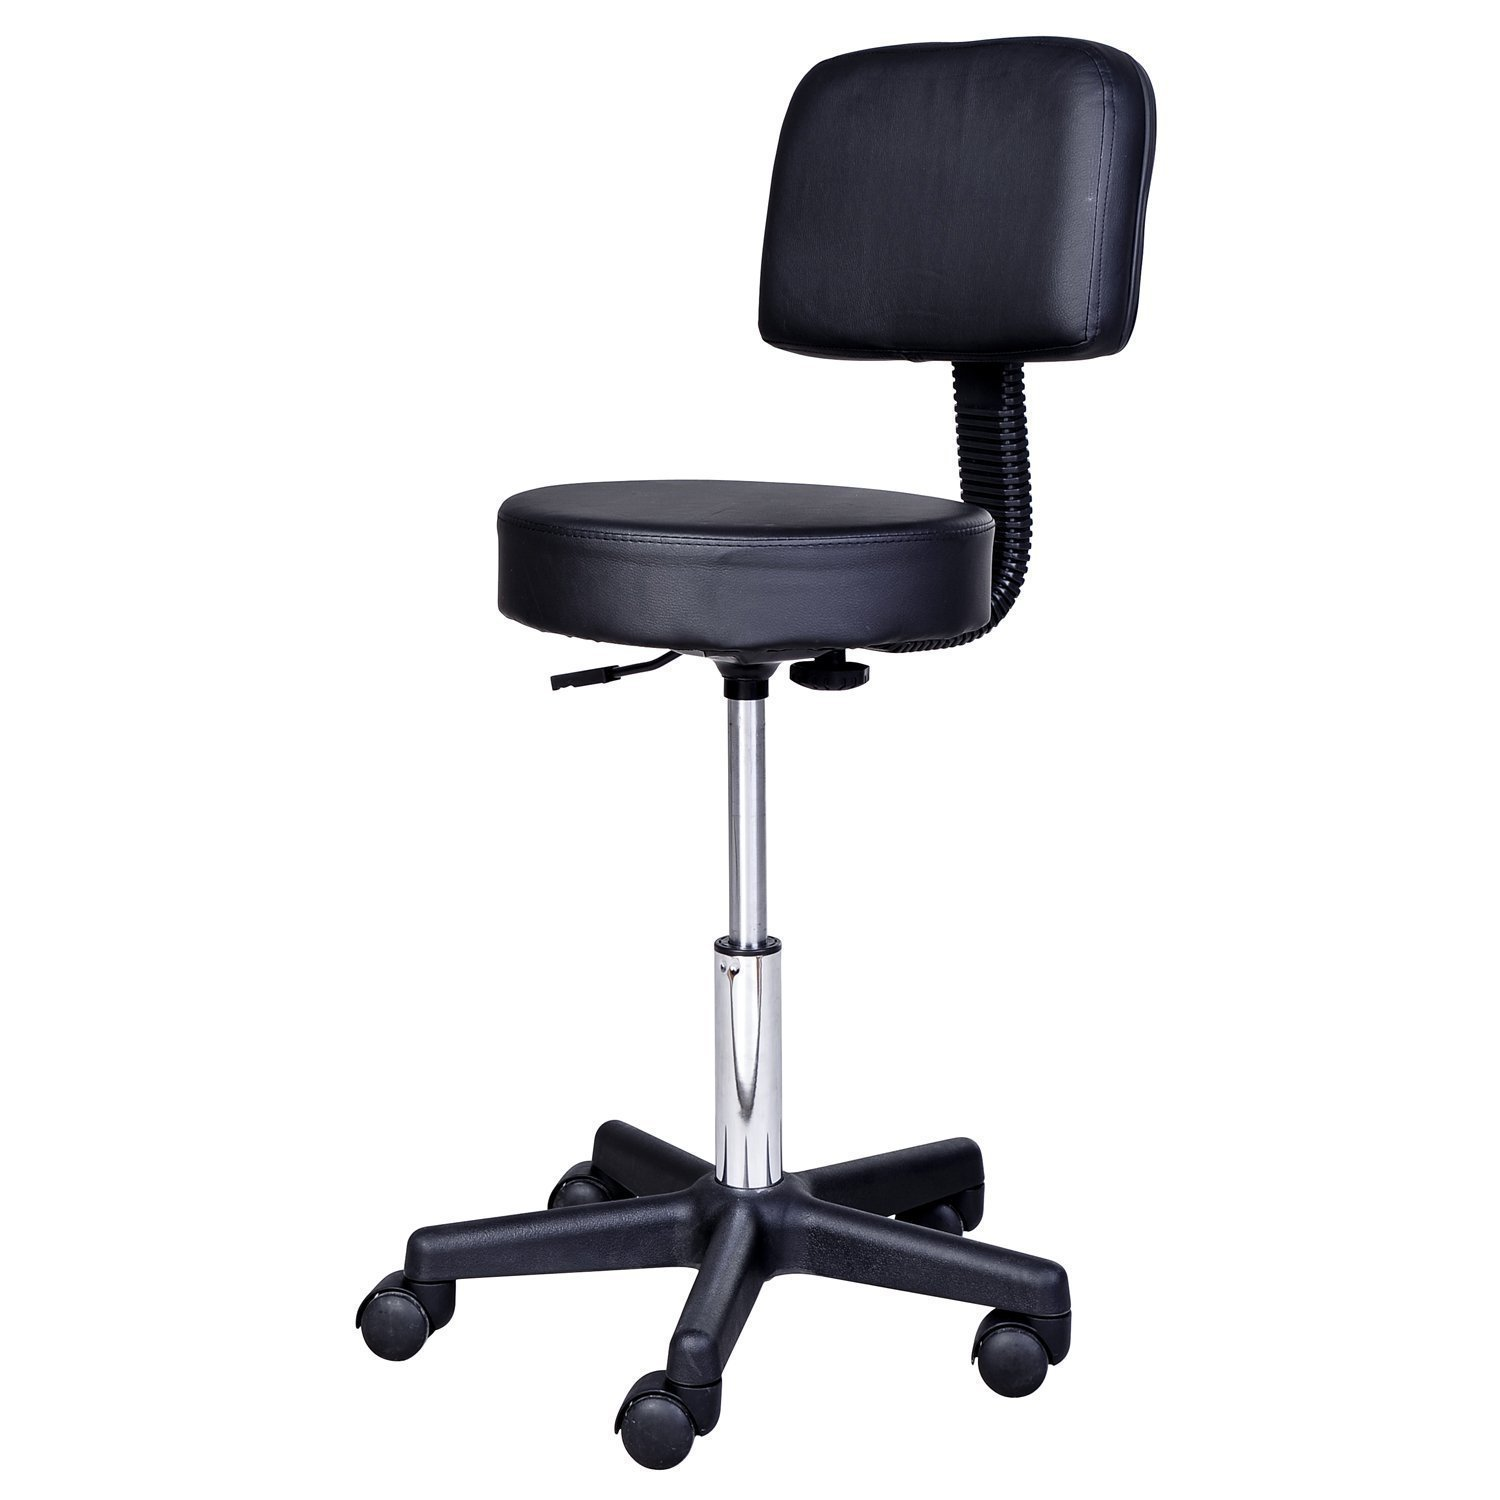 HOMCOM Stool Swivel Chair With Backrest Height Adjustable Lounge Faux Leather 77-89 Cm Black